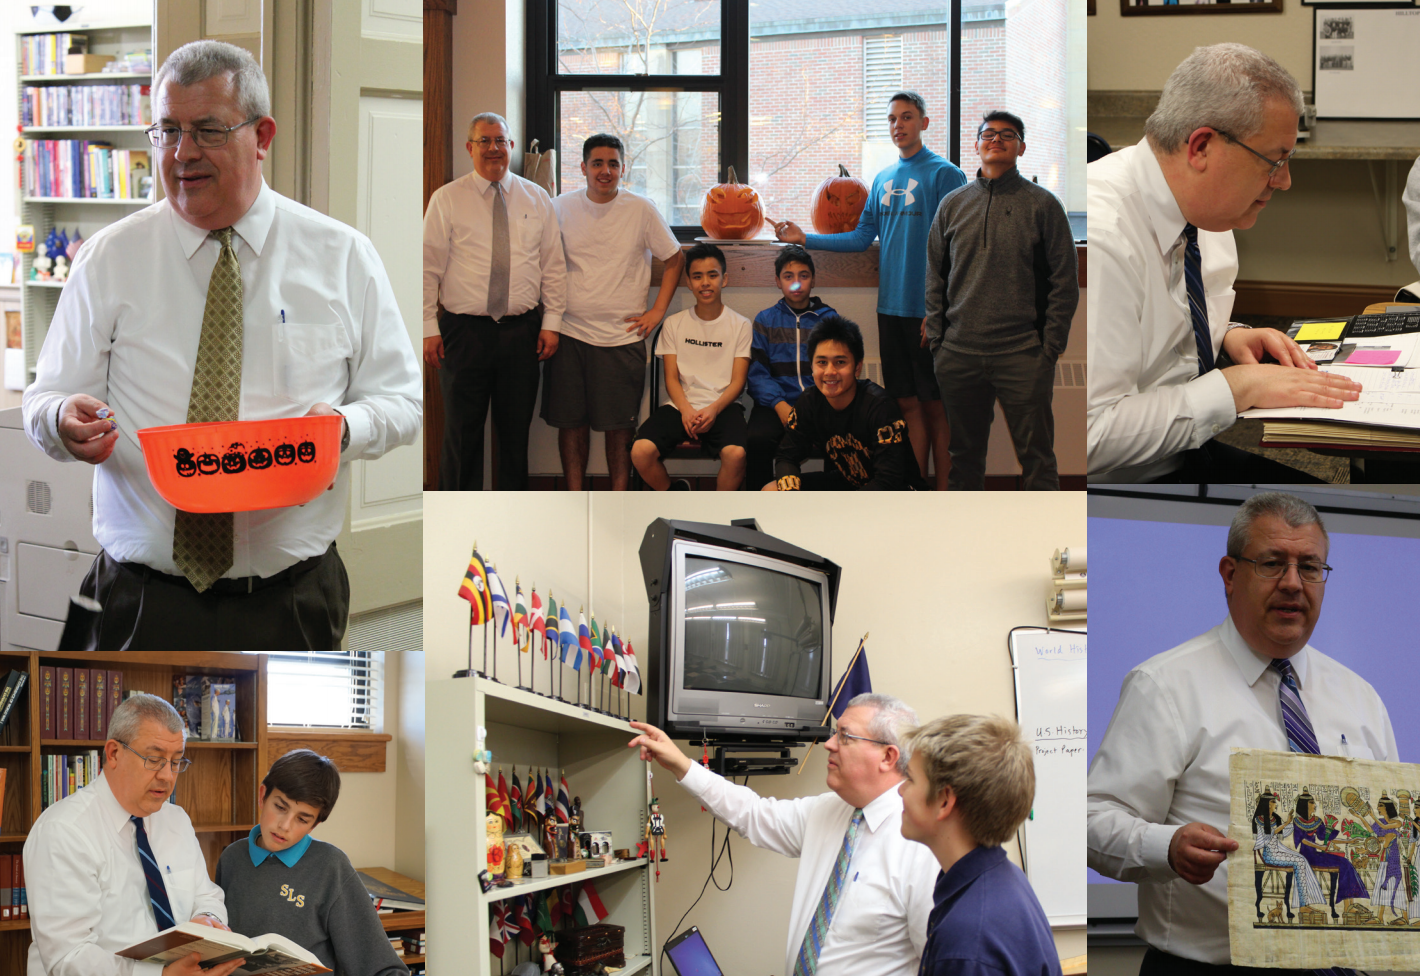 a compilation of photos of Mr. Kreig: handing out candy, posing with students, preparing for class, reading a book, pointing to flags and holding a picture of hieroglyphics